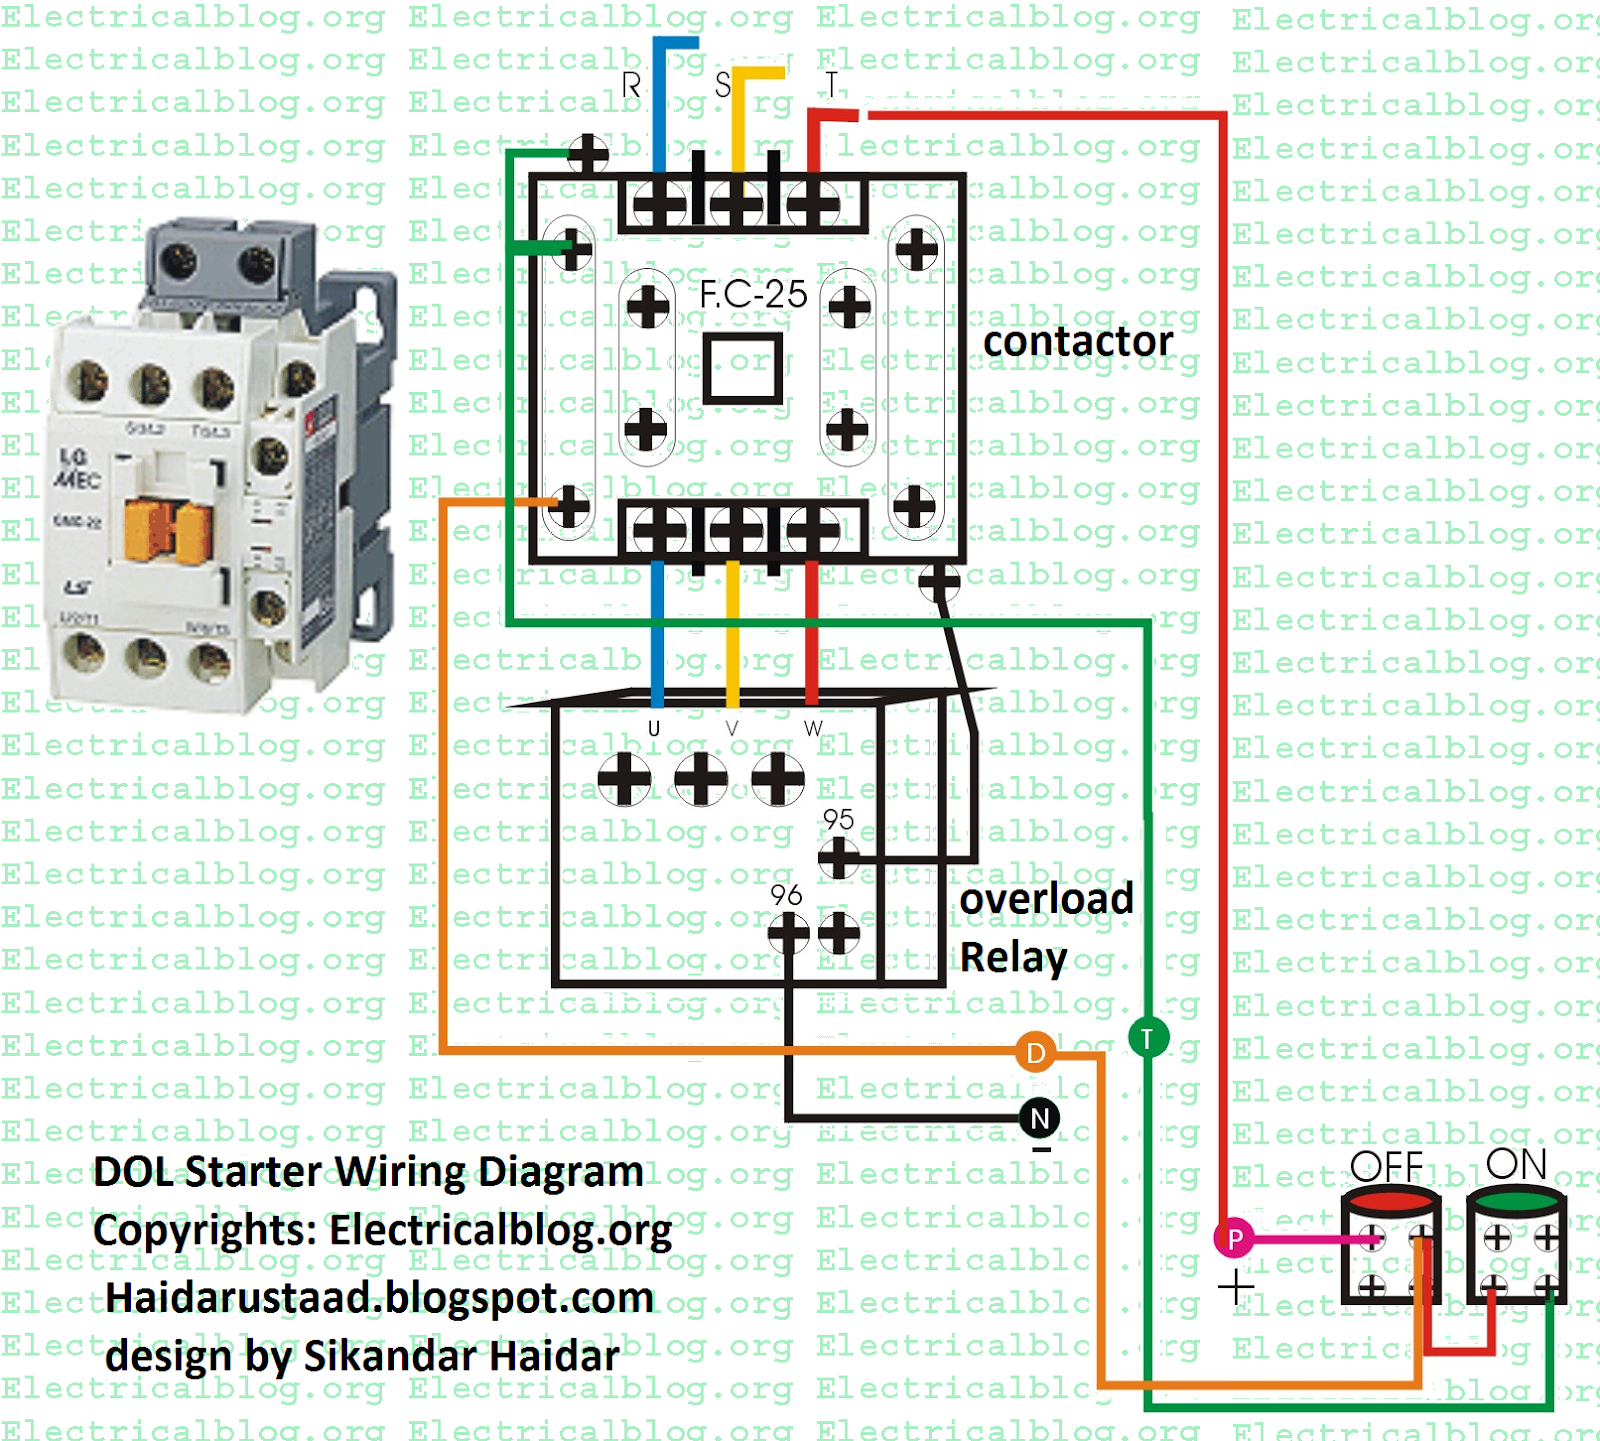 Direct Online Starter Wiring Diagram  U00ab Electrical And Electronic Free Learning Tutorials